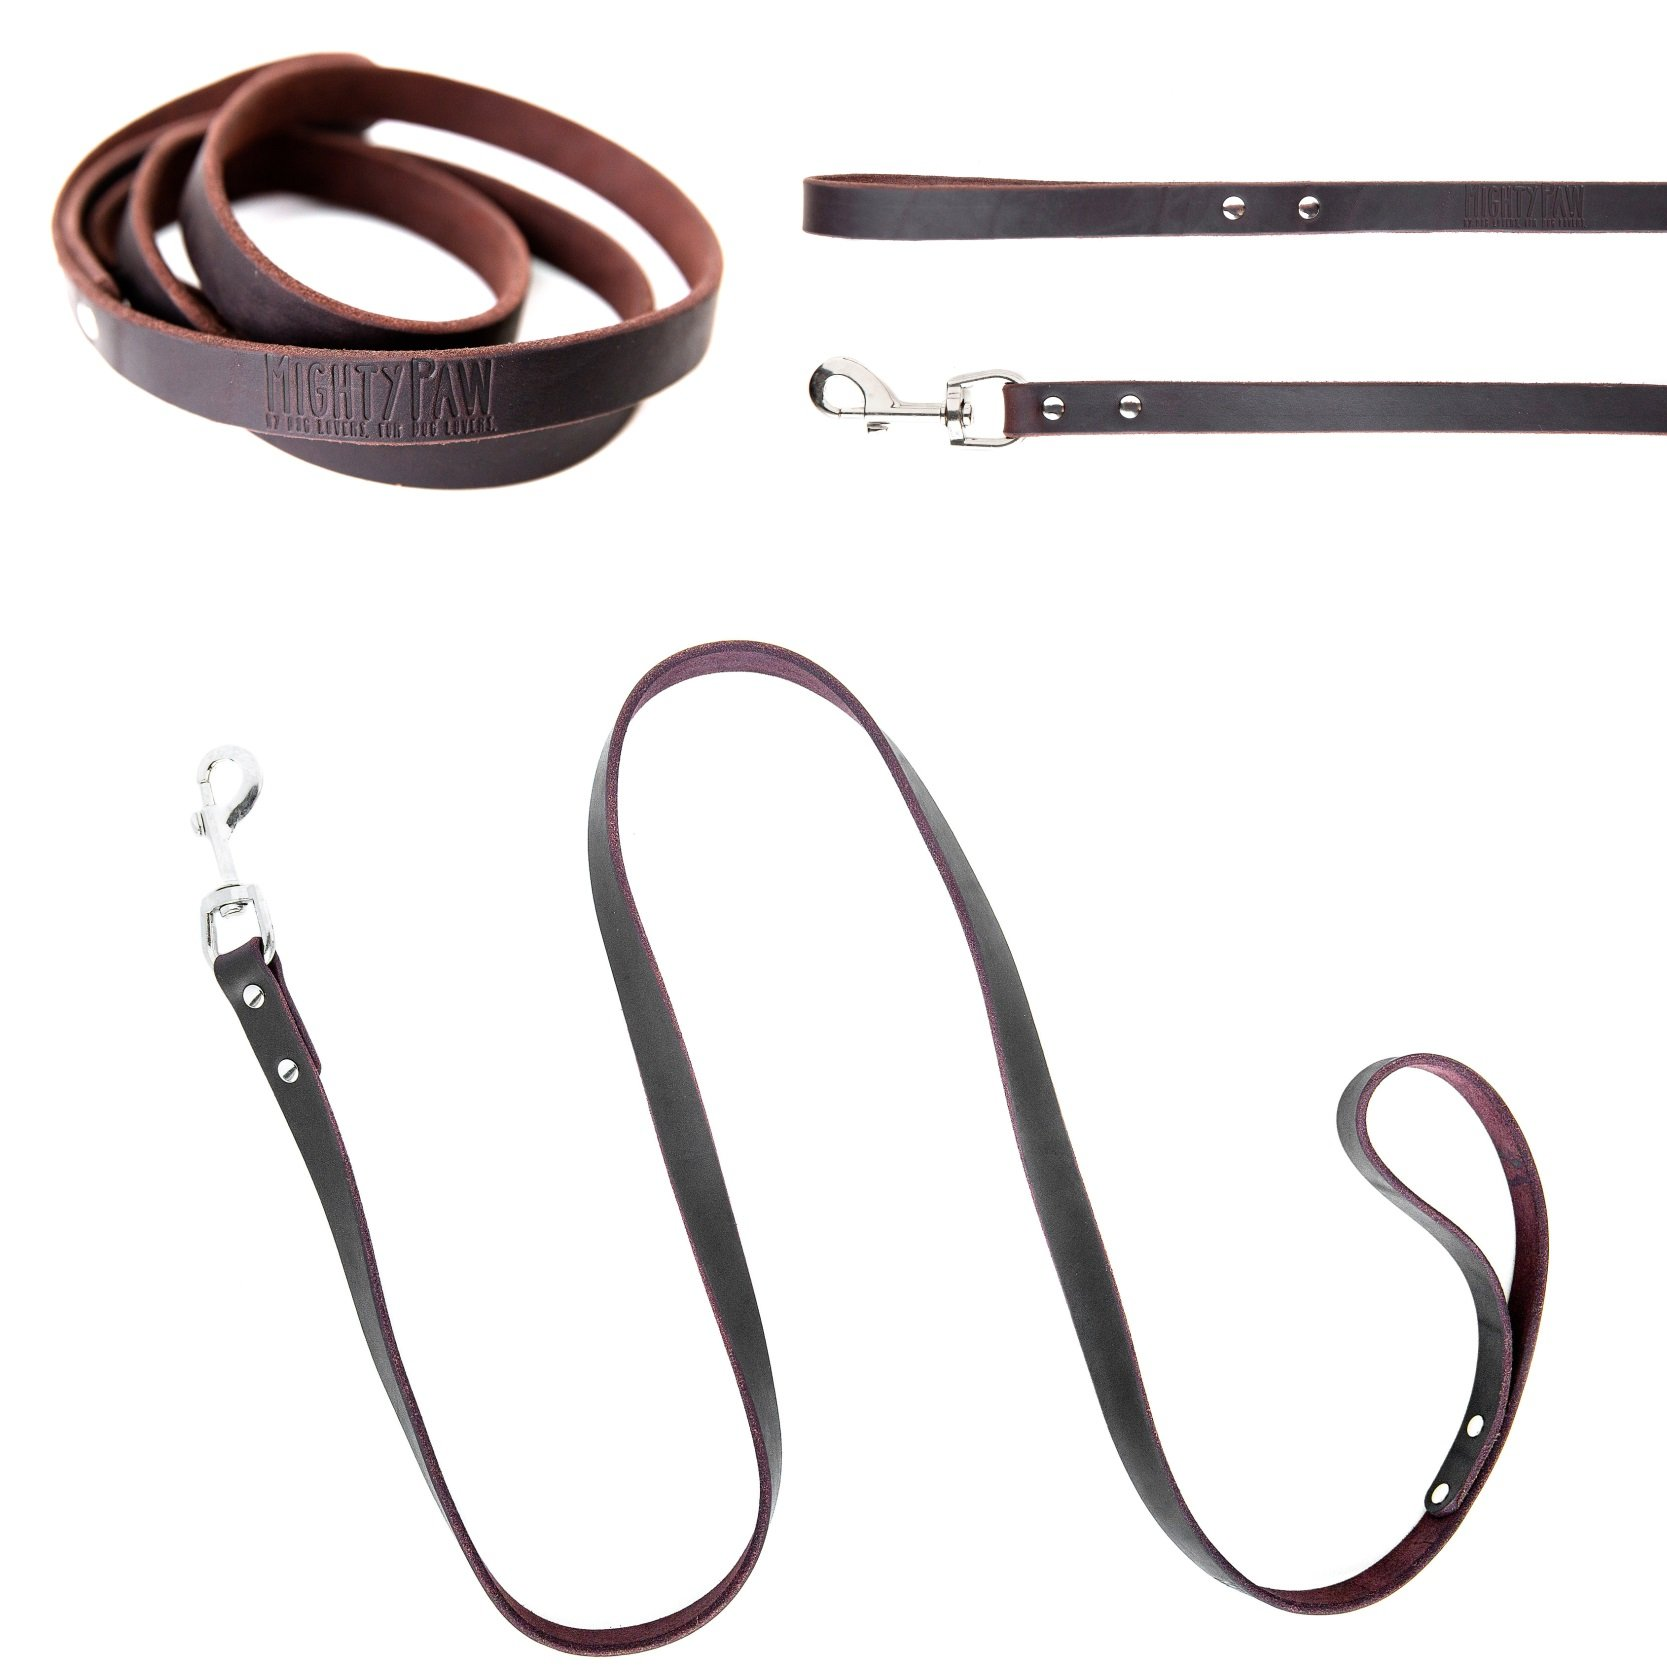 Mighty Paw Leather Dog Leash, Super Soft Distressed Leather- Premium Quality, Modern Stylish Look